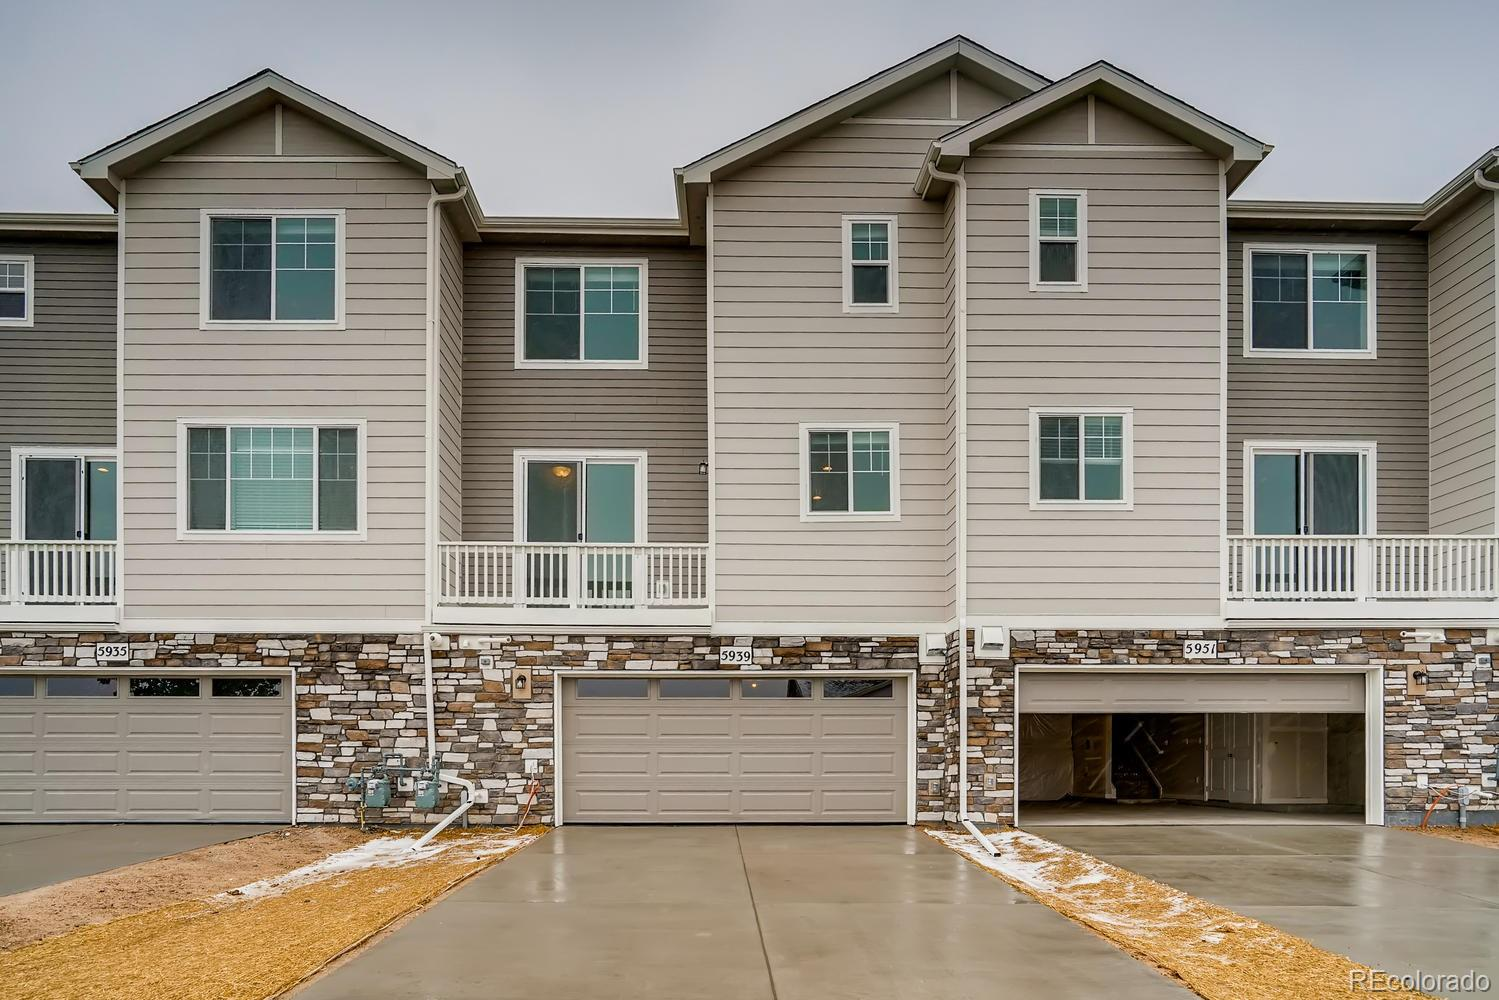 """Luxury Townhome in the heart of Castlerock with an early 2021 completion! Photos are from similar home.  The beautiful Berkshire is a 2 bed, 2.5 bath, with oversized attached 2 car garage. Kitchen includes stainless steel appliances, granite countertops, gas range, dishwasher, and built-in microwave.  Open floorplan with spacious living area, kitchen island, dining space, and is perfect for entertaining.  Both bedrooms have en-suite bathrooms providing privacy and making it a great roommate layout.  Upstairs laundry conveniently located near both bedrooms.  Includes energy-efficient furnace, A/C, tankless water heater, and 2"""" white blinds. Right outside your back door, you can enjoy miles of walking trails through the beautiful scenery of the nature filled canyons. Don't miss out on living at The Enclave, just moments away from major highways, shopping, dining, award winning Douglas County Schools, and multiple outdoor activities!"""